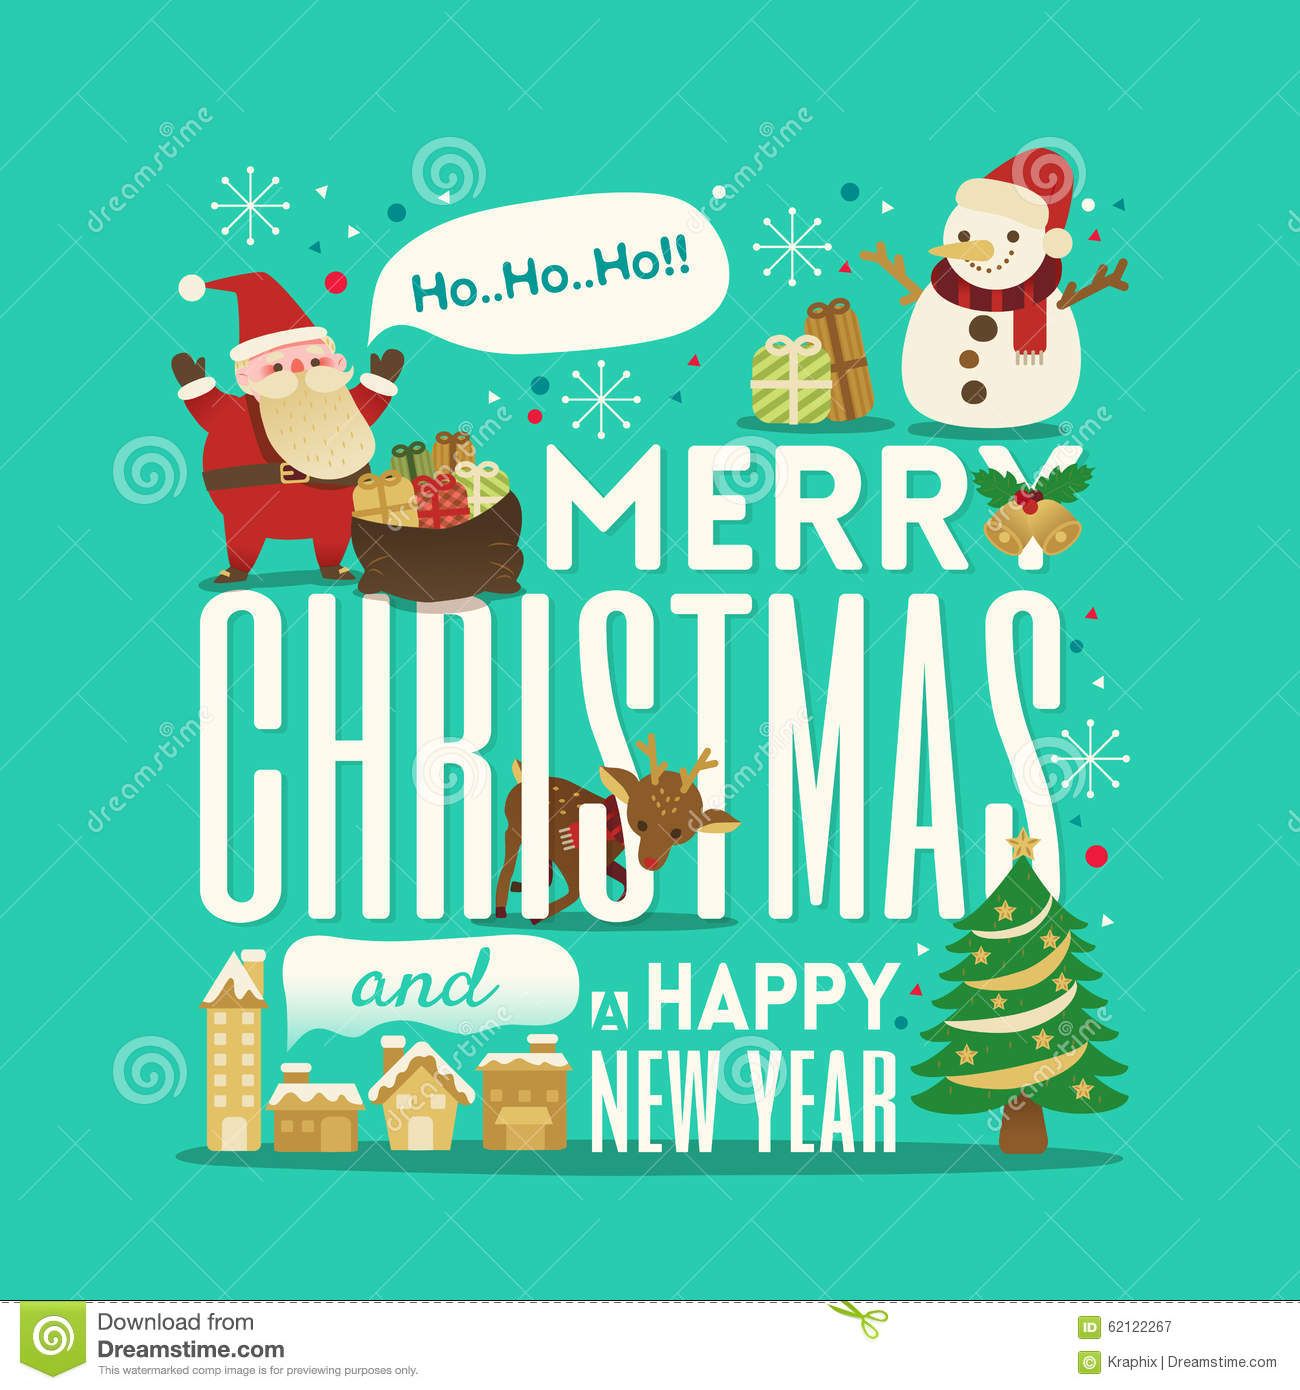 Greeting merry christmas and happy new year stock vector greeting merry christmas and happy new year m4hsunfo Image collections